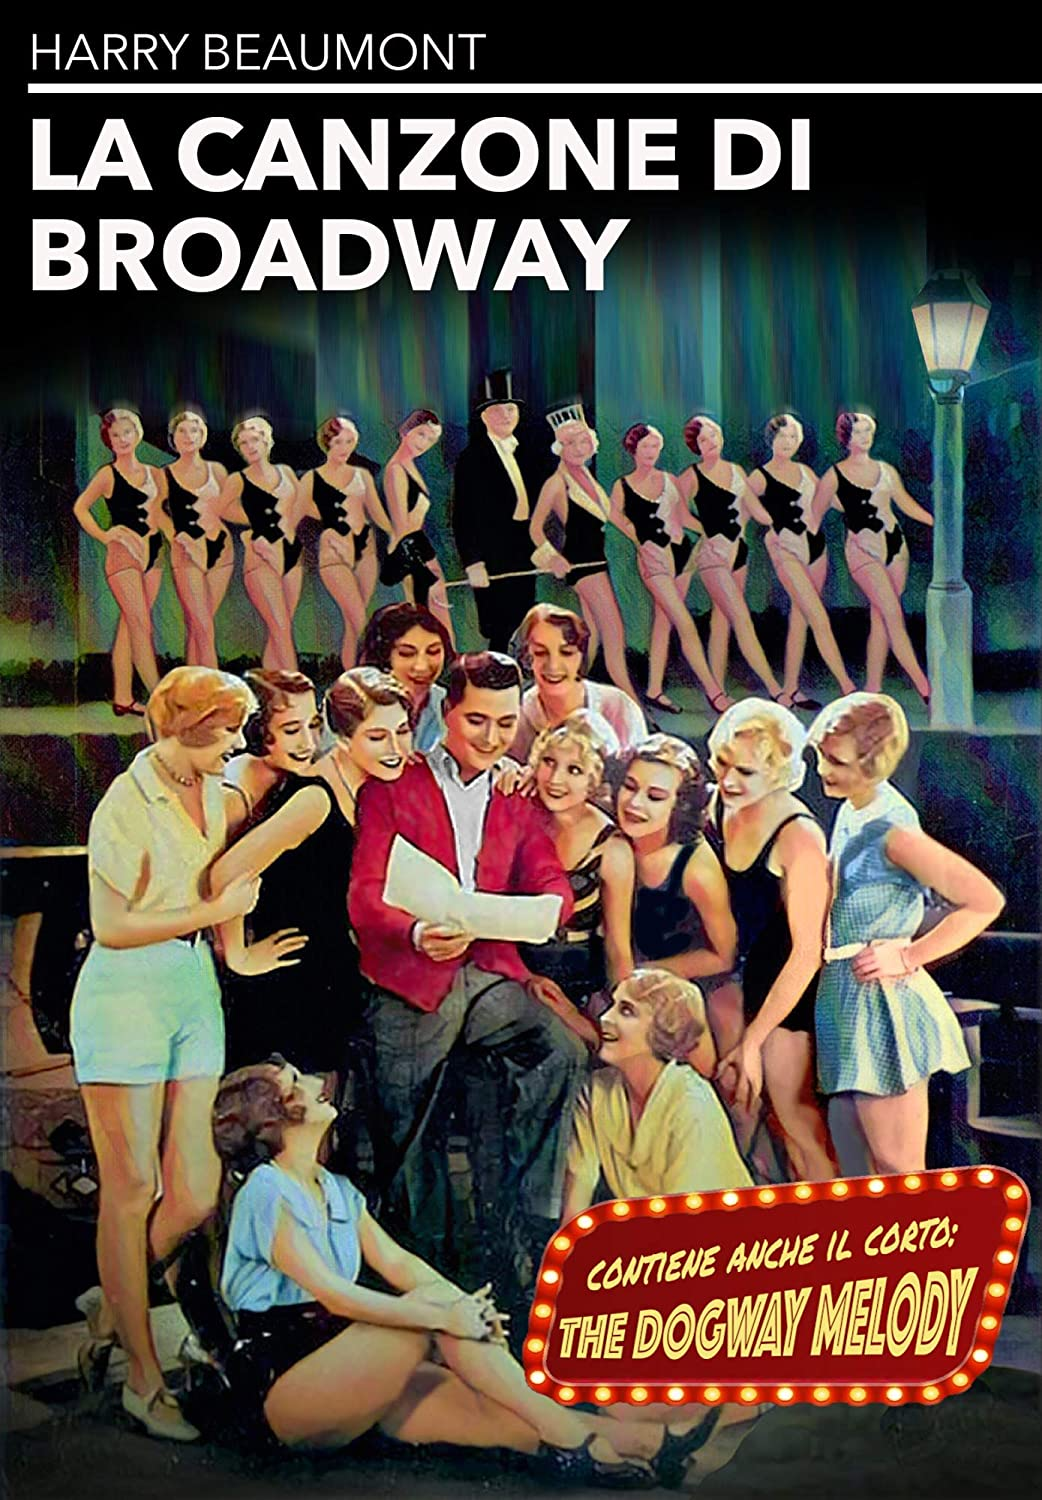 LA CANZONE DI BROADWAY / THE DOGWAY MELODY (DVD)